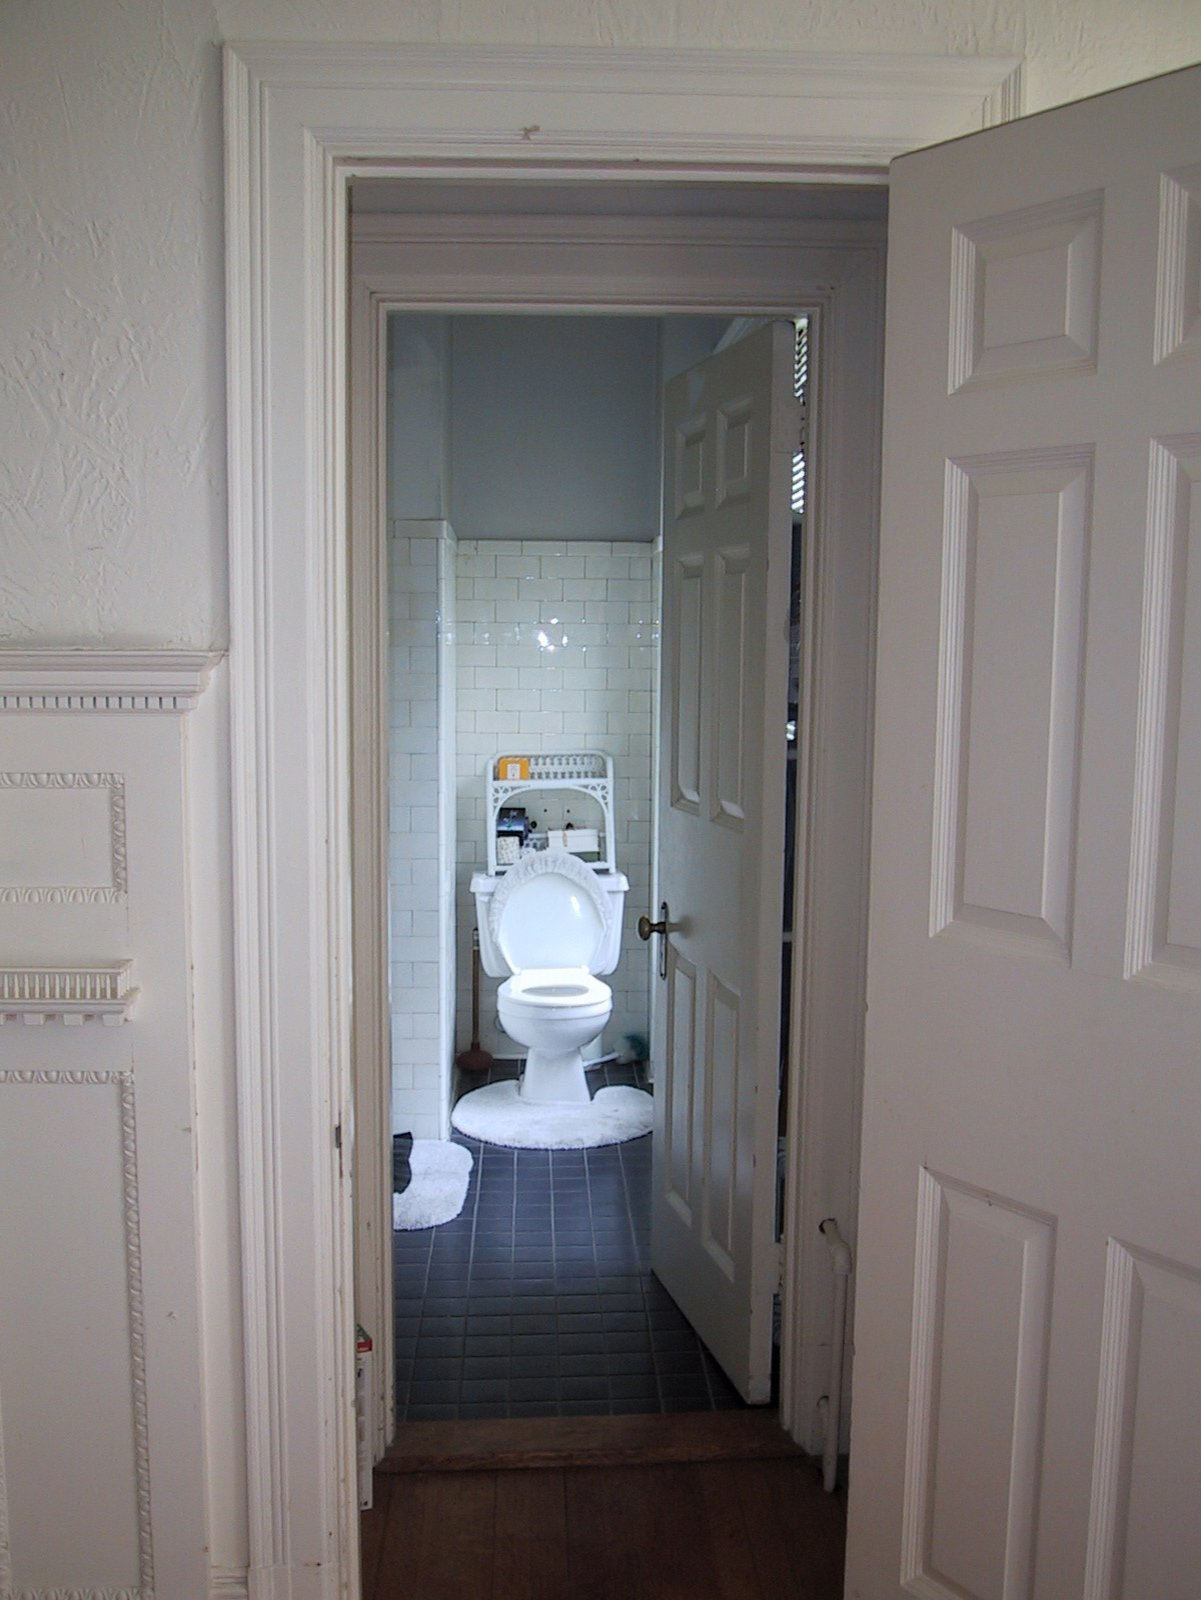 Before the renovation, the bathroom served as both the master bath as well as the powder room, creating unnecessary traffic between the private and public spaces of the house. Butz and Klug found a solution by uniting the master bathroom (which had been separated into two rooms by prior remodels) and adding a guest bathroom. Photo courtesy of   Butz + Klug Architecture  Photo 2 of 4 in Loo & Improved